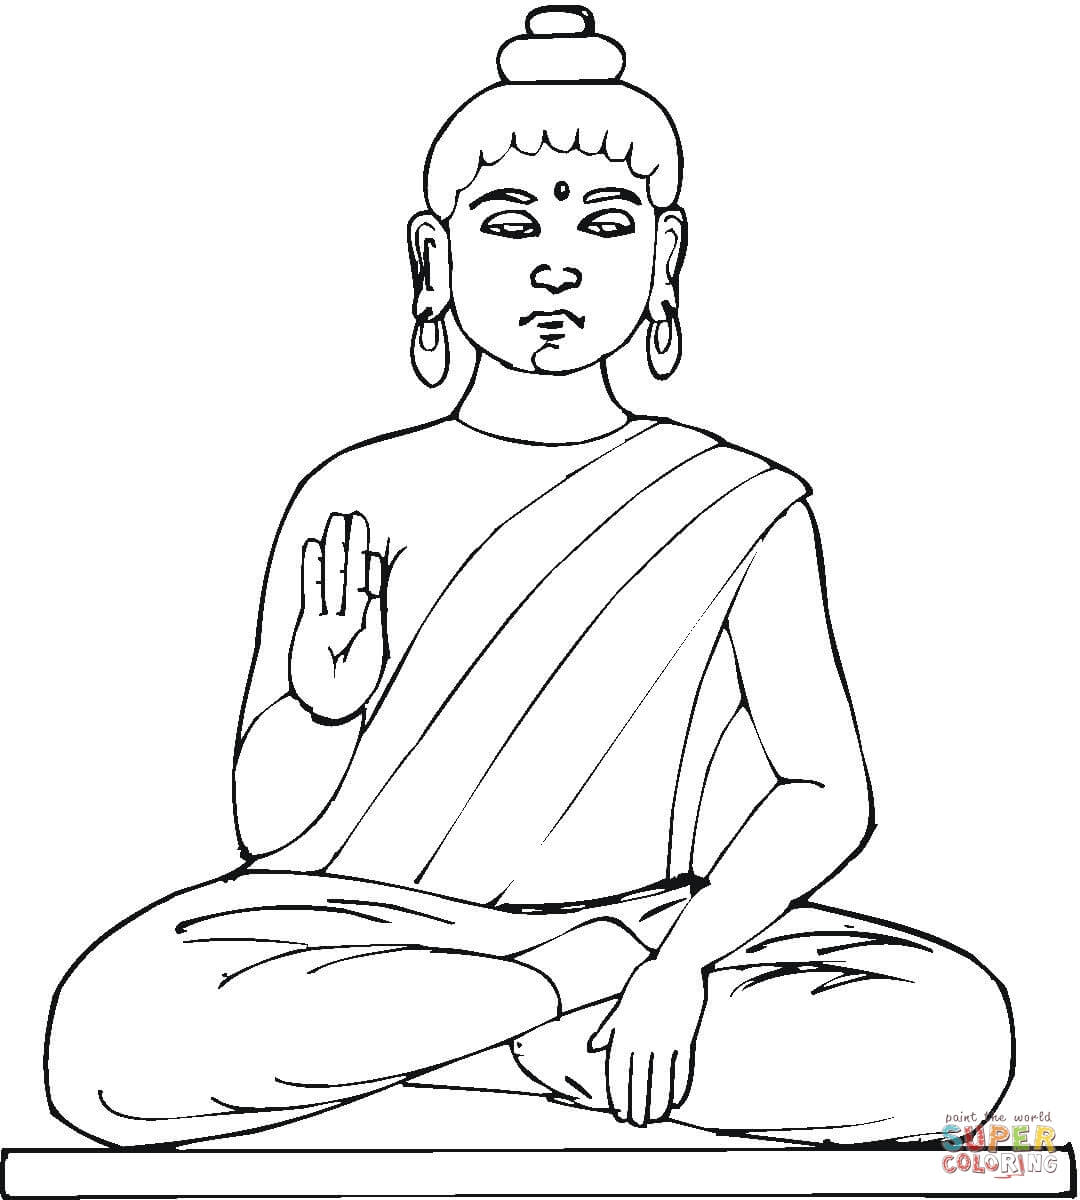 buddha-coloring-page-0020-q1